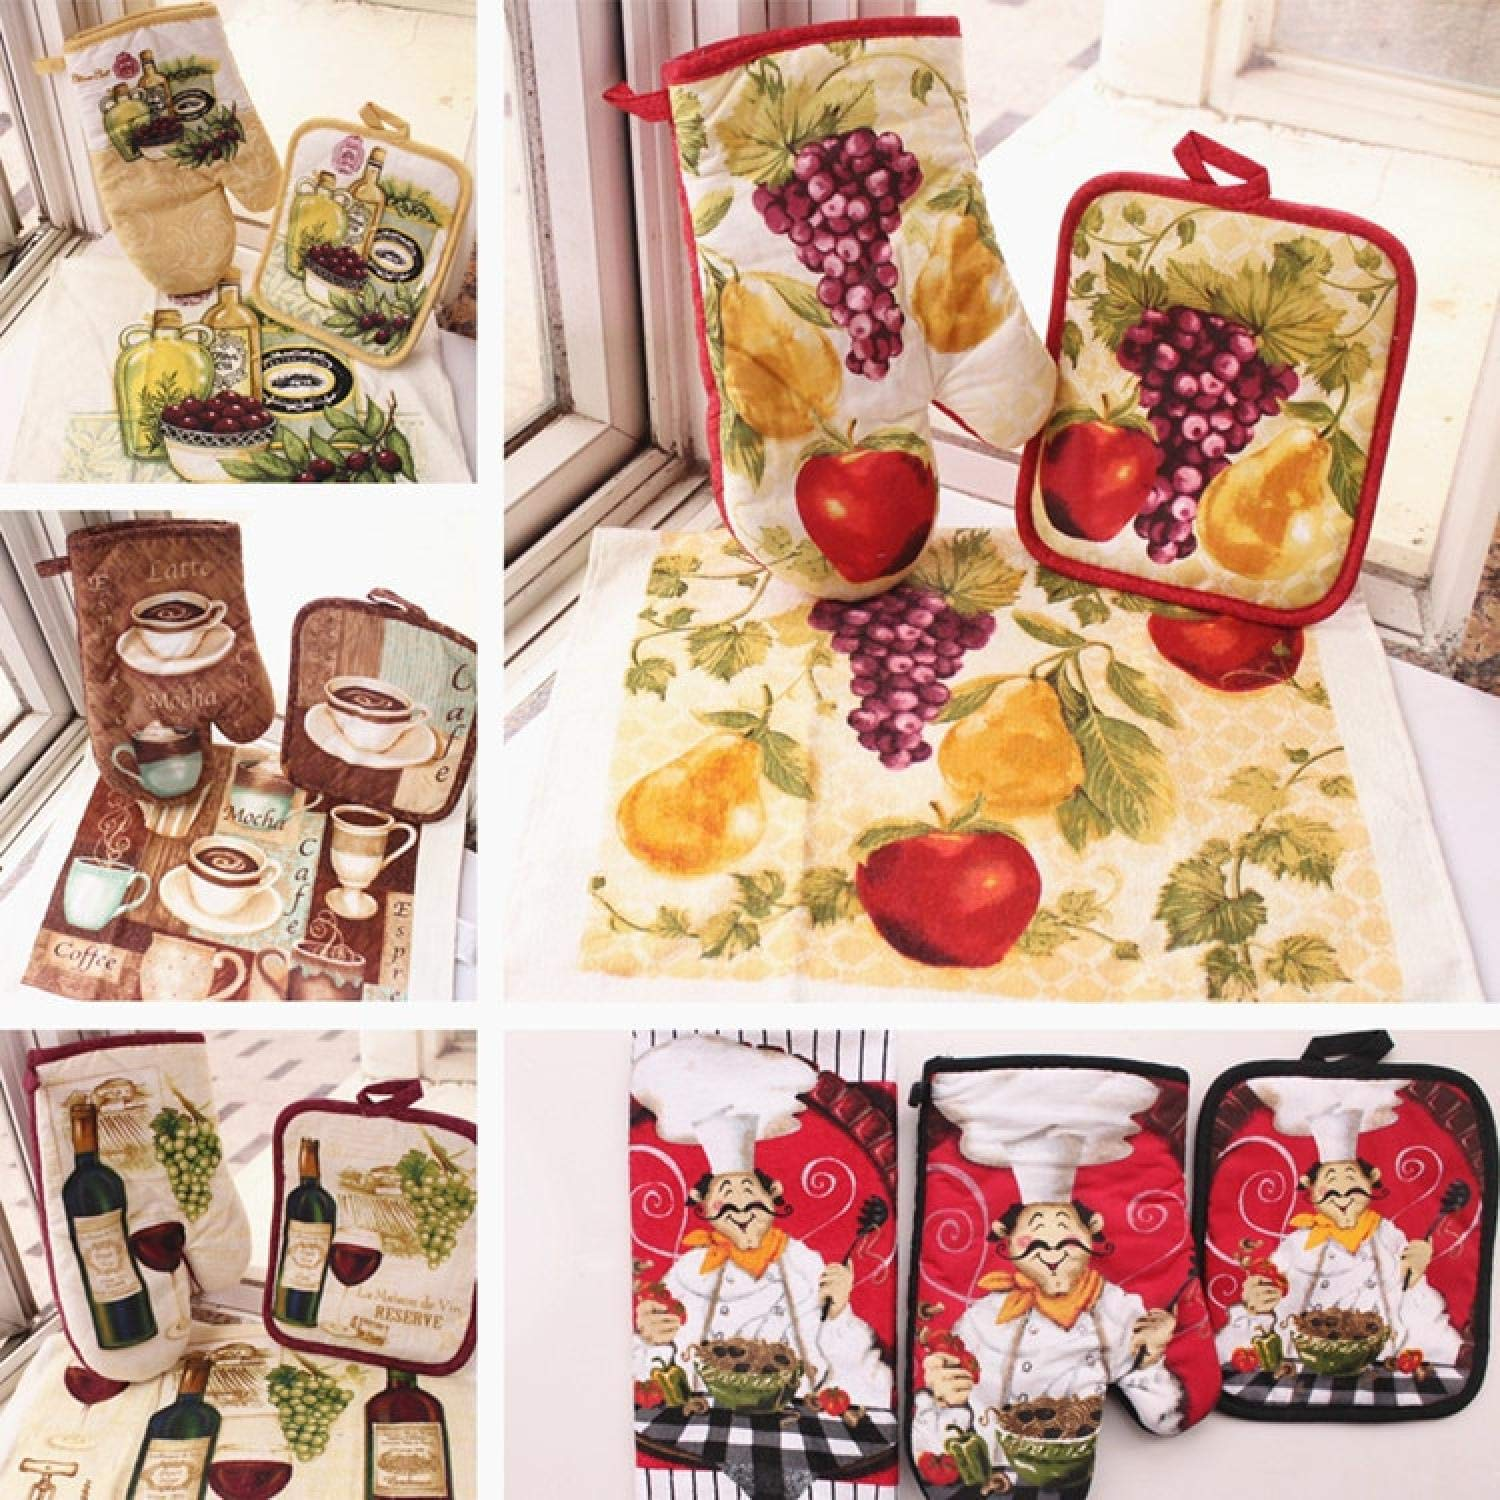 Cotton Kitchen Fruit Coffee Designs Oven Mitts Gloves Potholders Towels As Kitchen Tool Set Bakeware Heat-Resistant Gloves